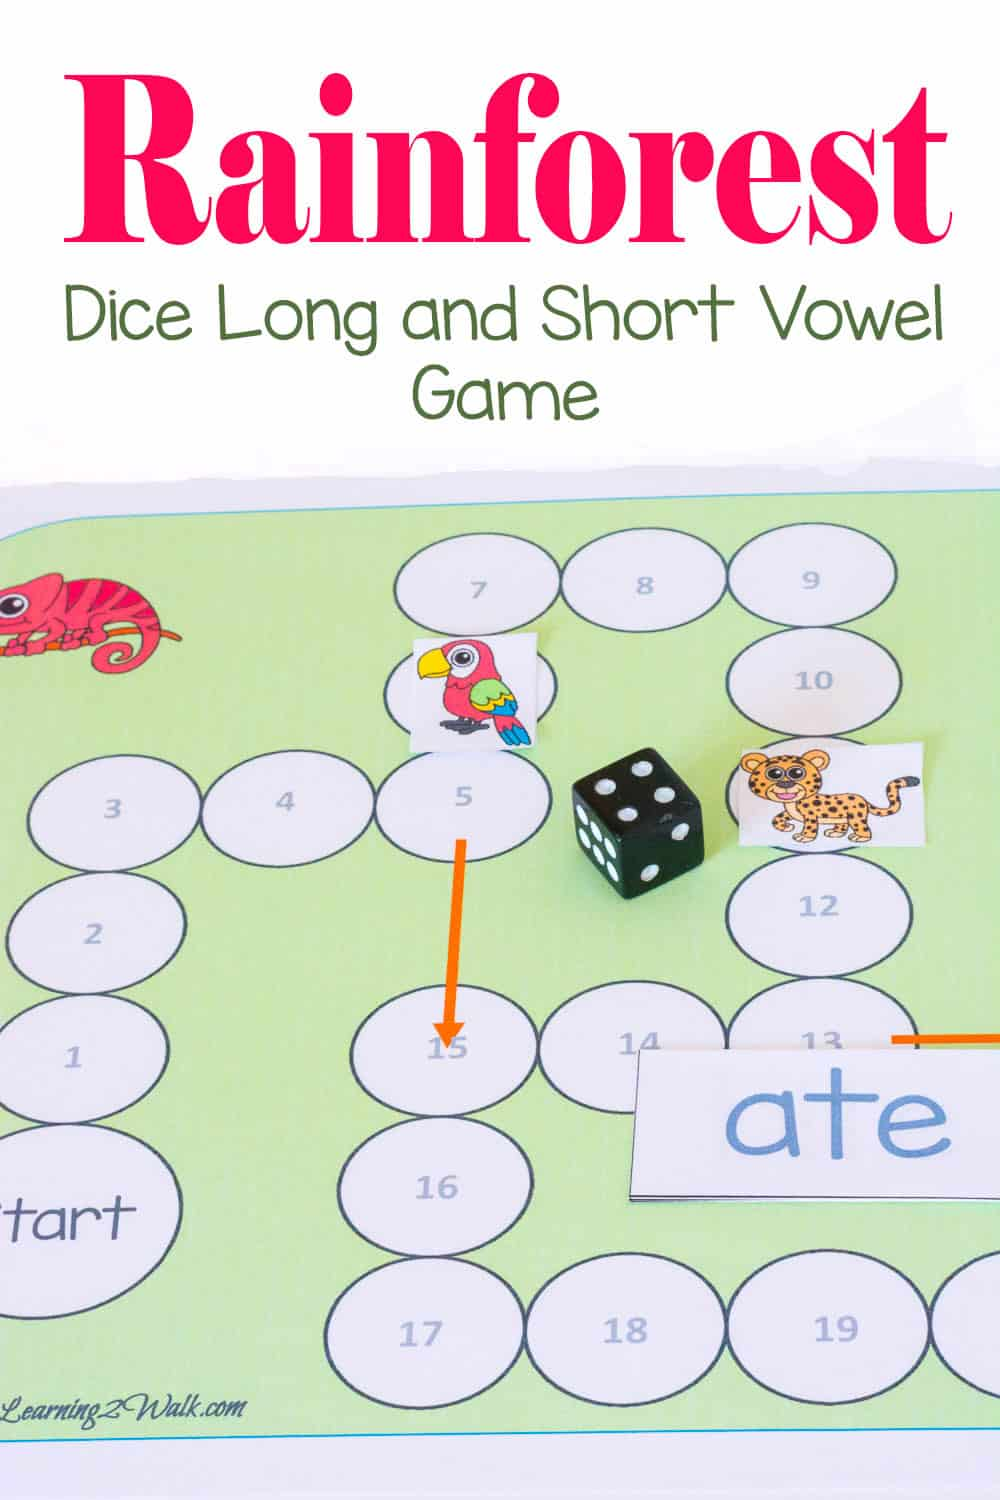 This rainforest dice long and short vowel reading game is such a fun way to help kids read vowels